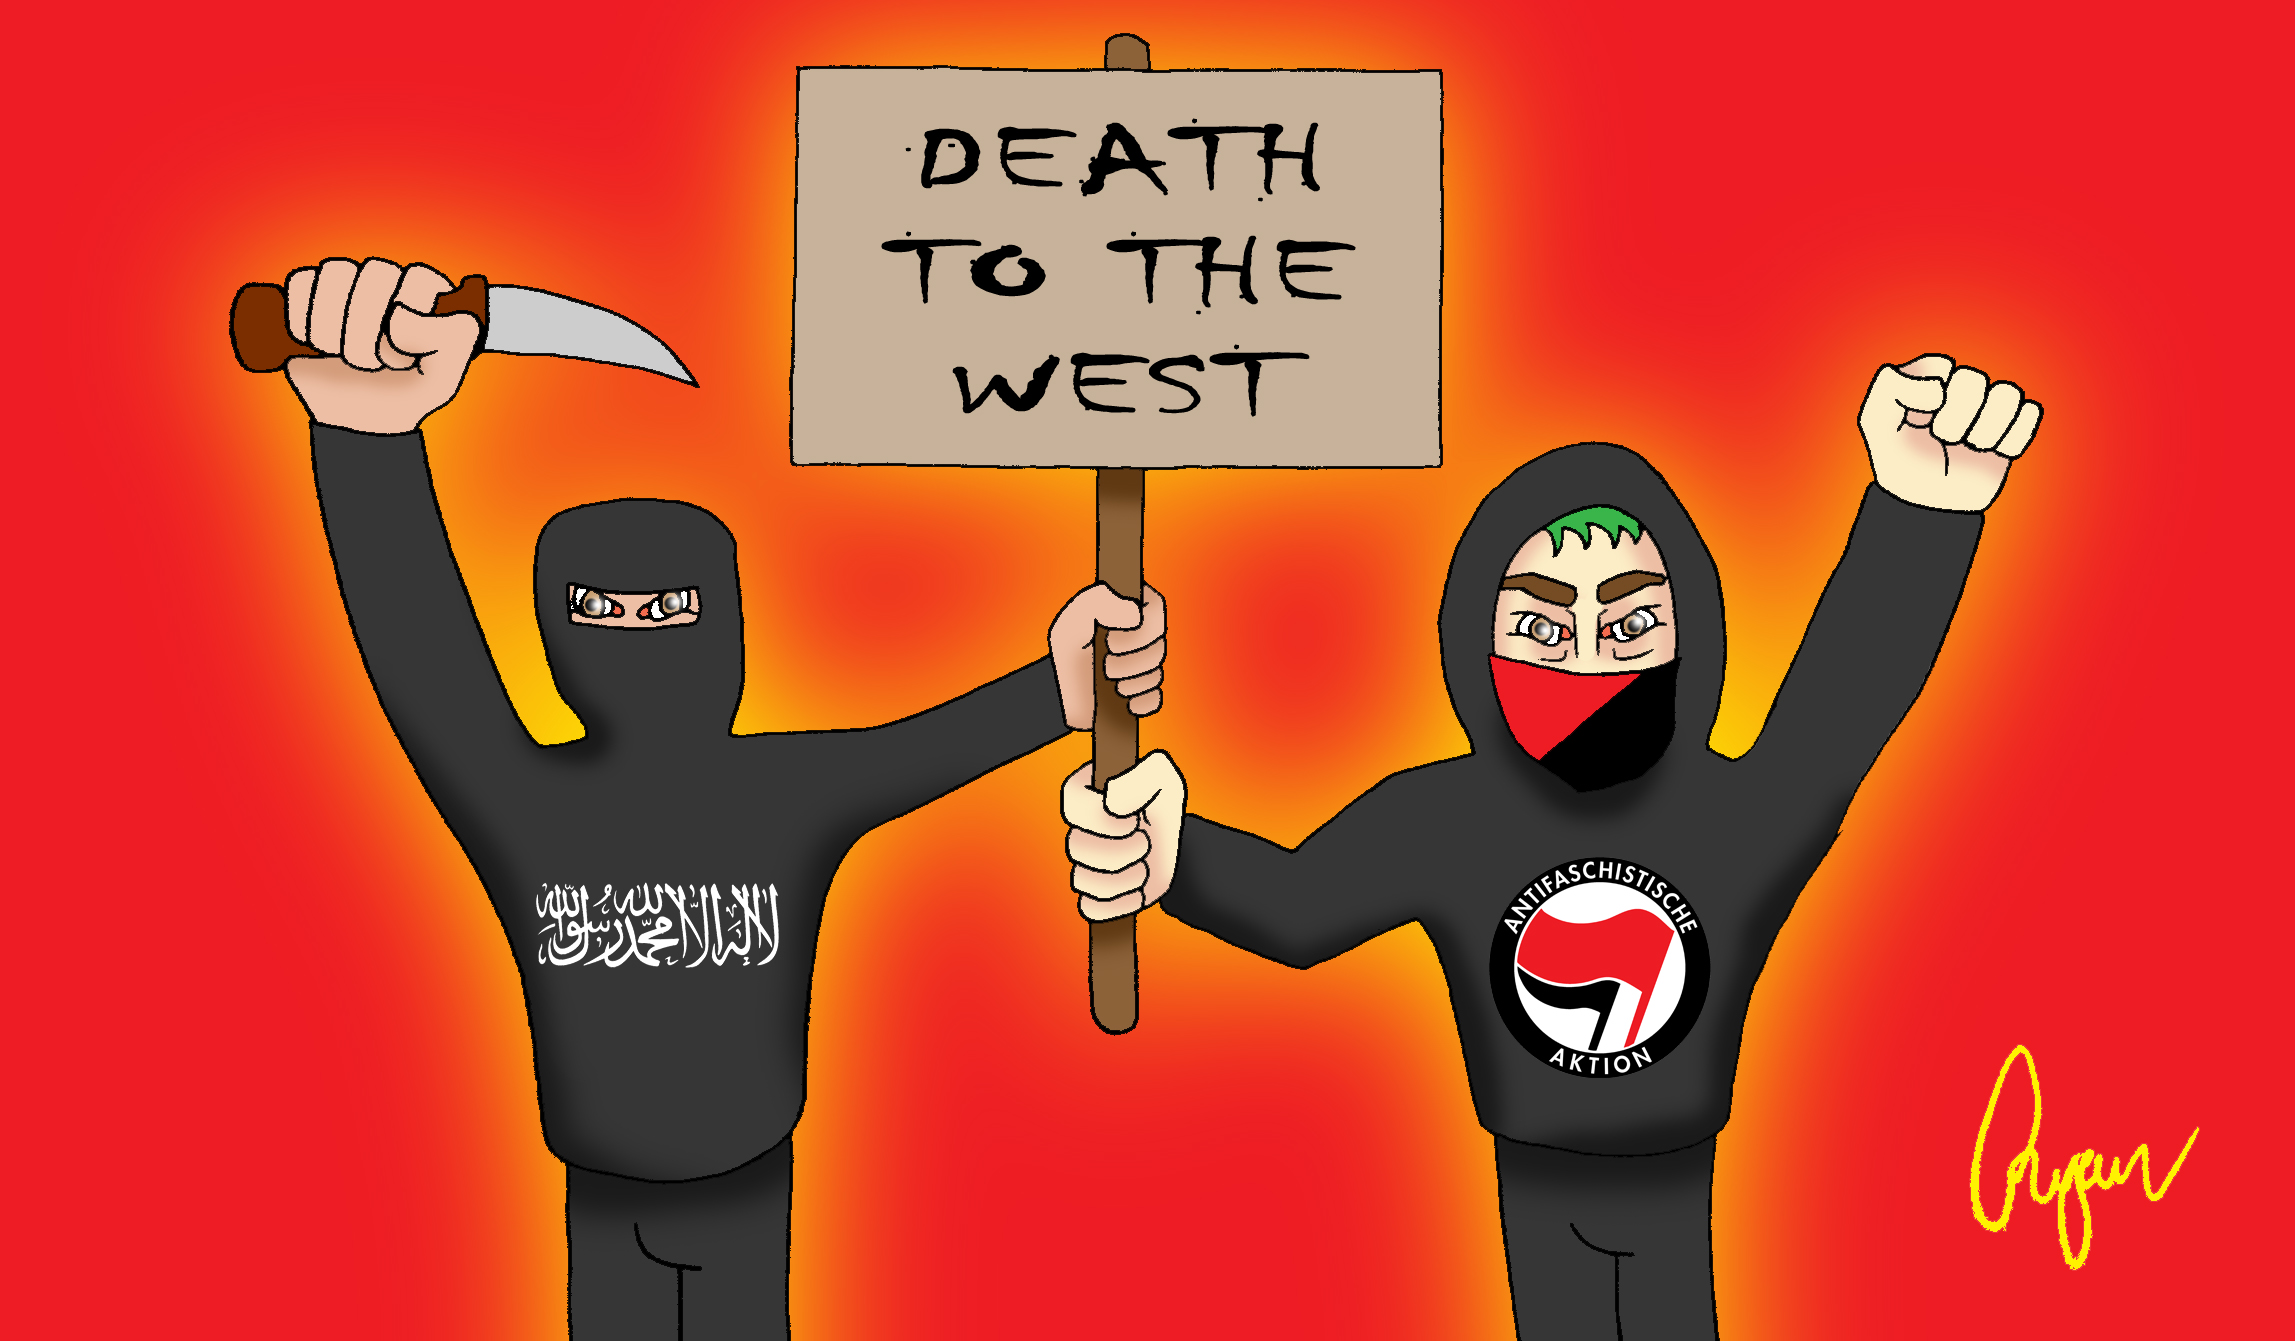 https://i2.wp.com/www.xyz.net.au/wp-content/uploads/2016/06/Cartoon-Antifa-and-ISIS_2.jpg